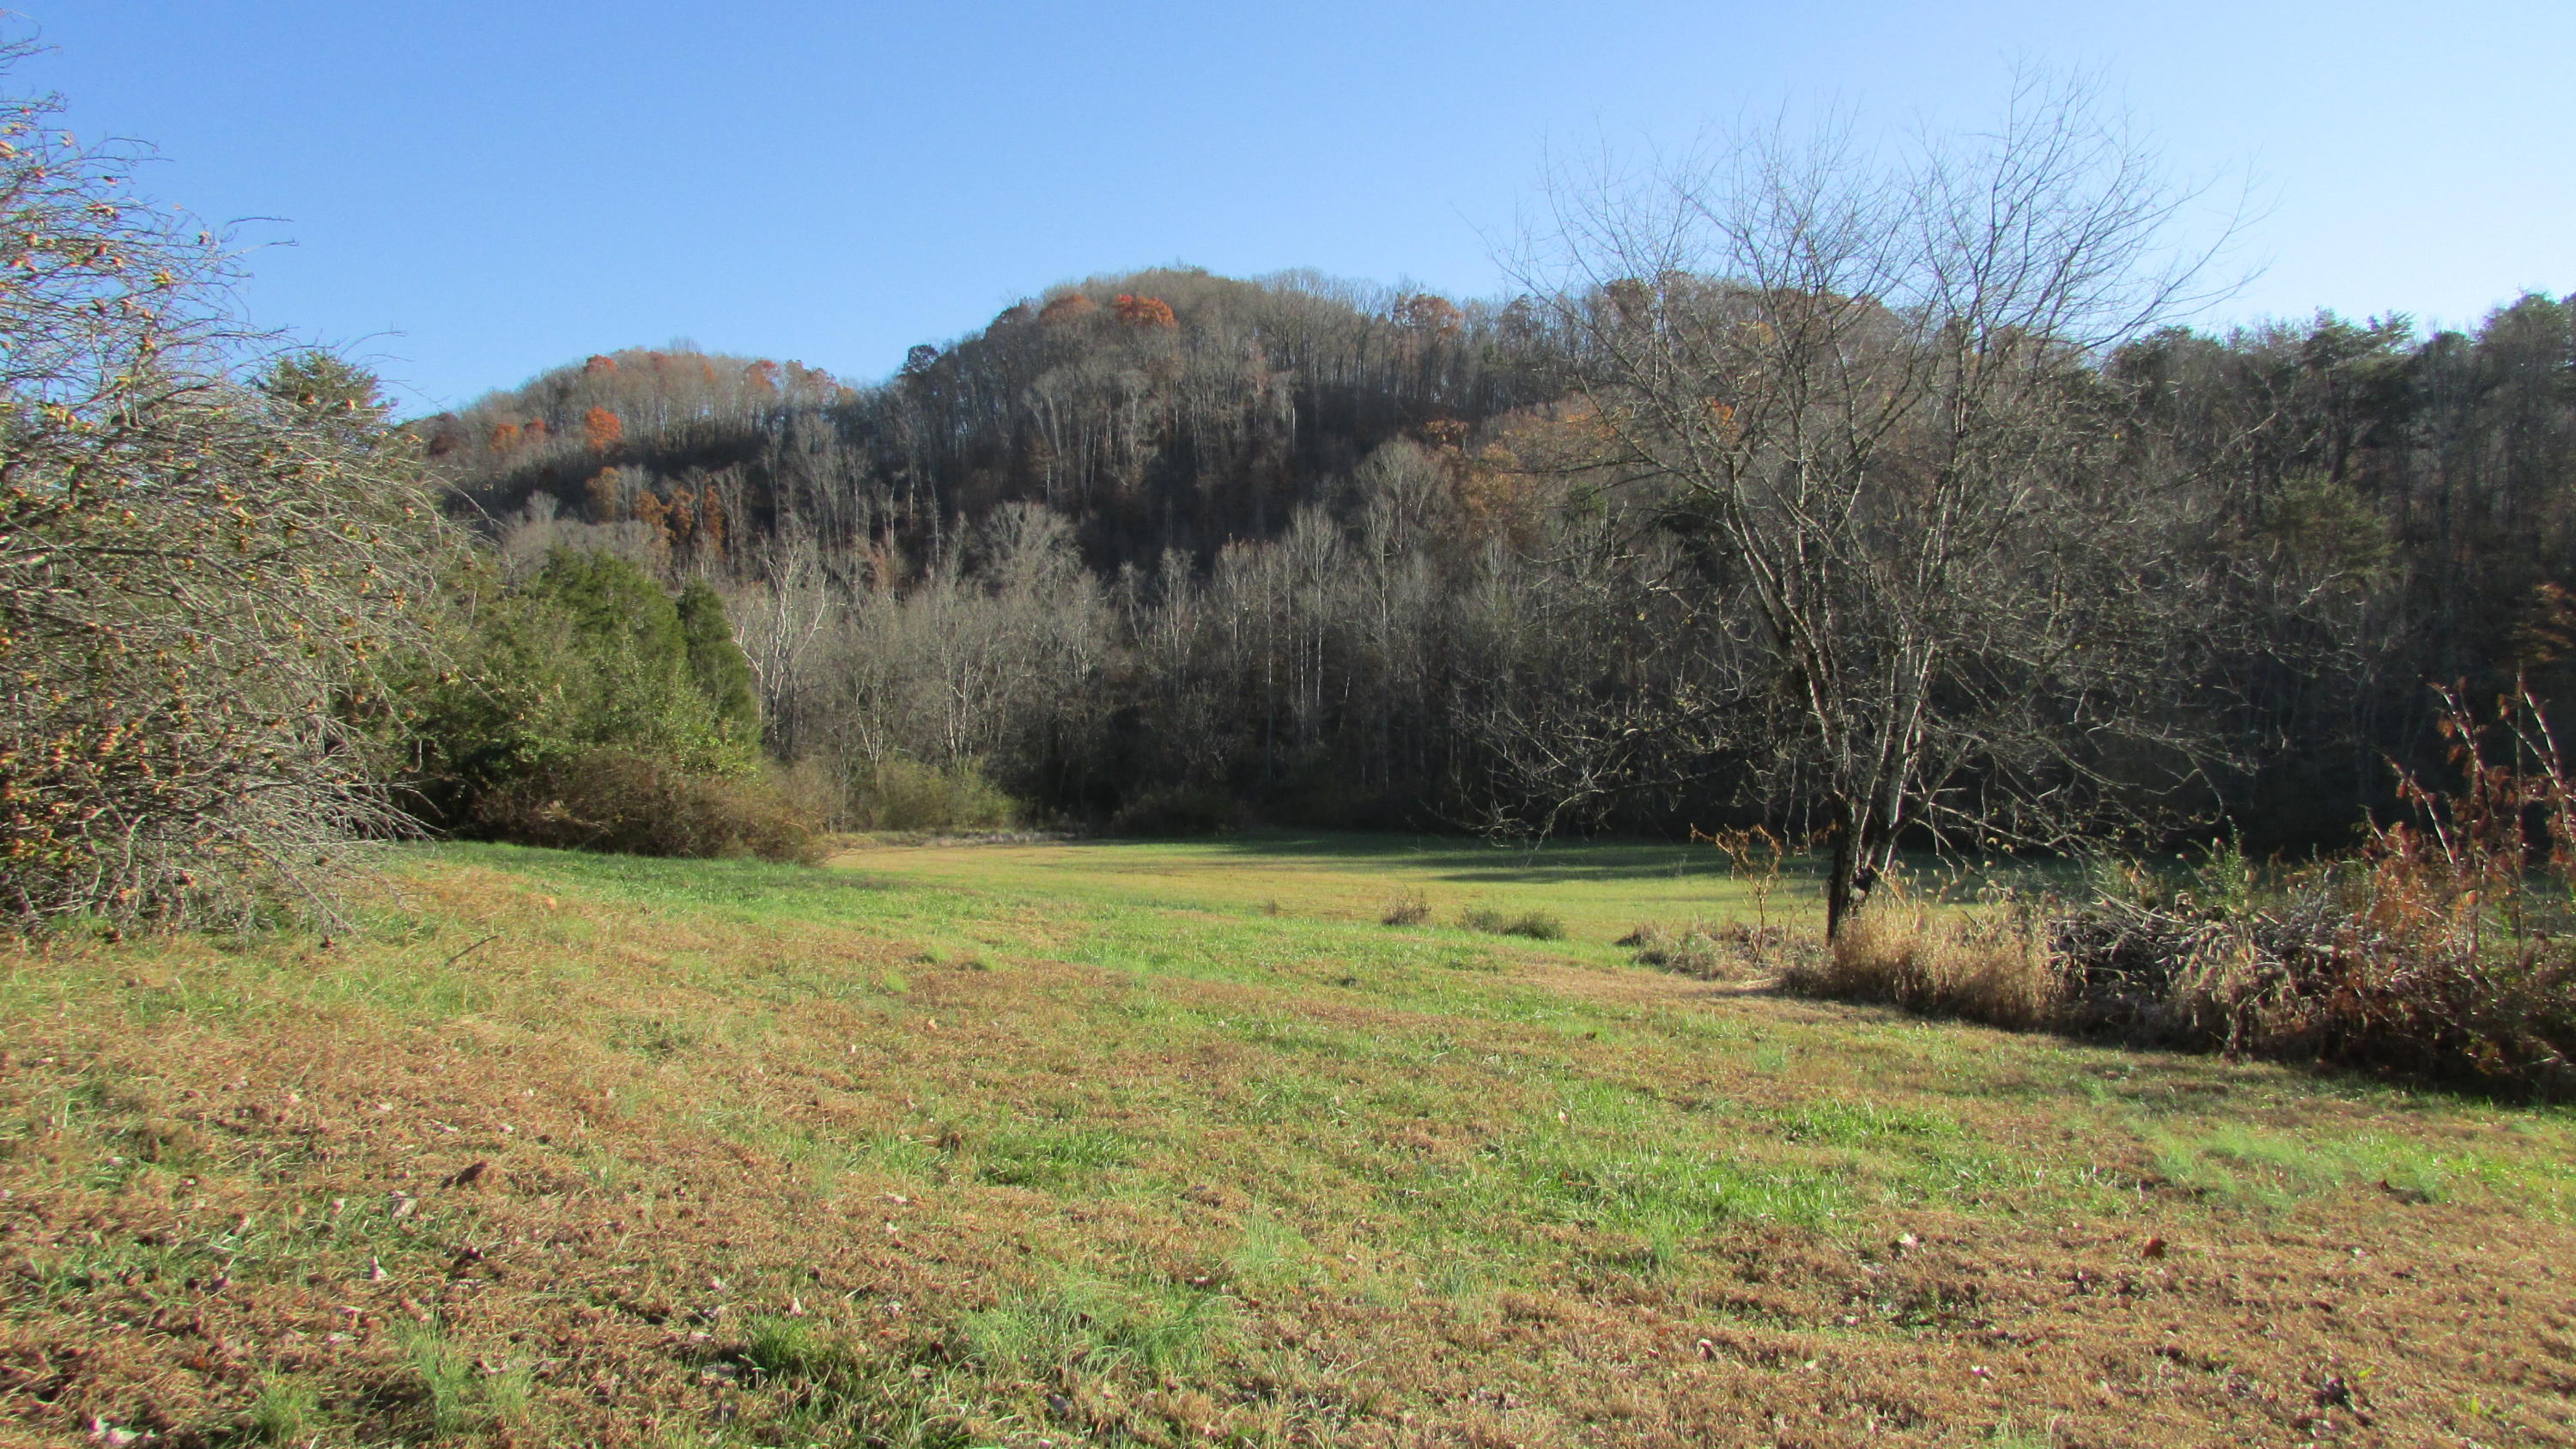 20191128183916817861000000-o Clinton anderson county homes for sale